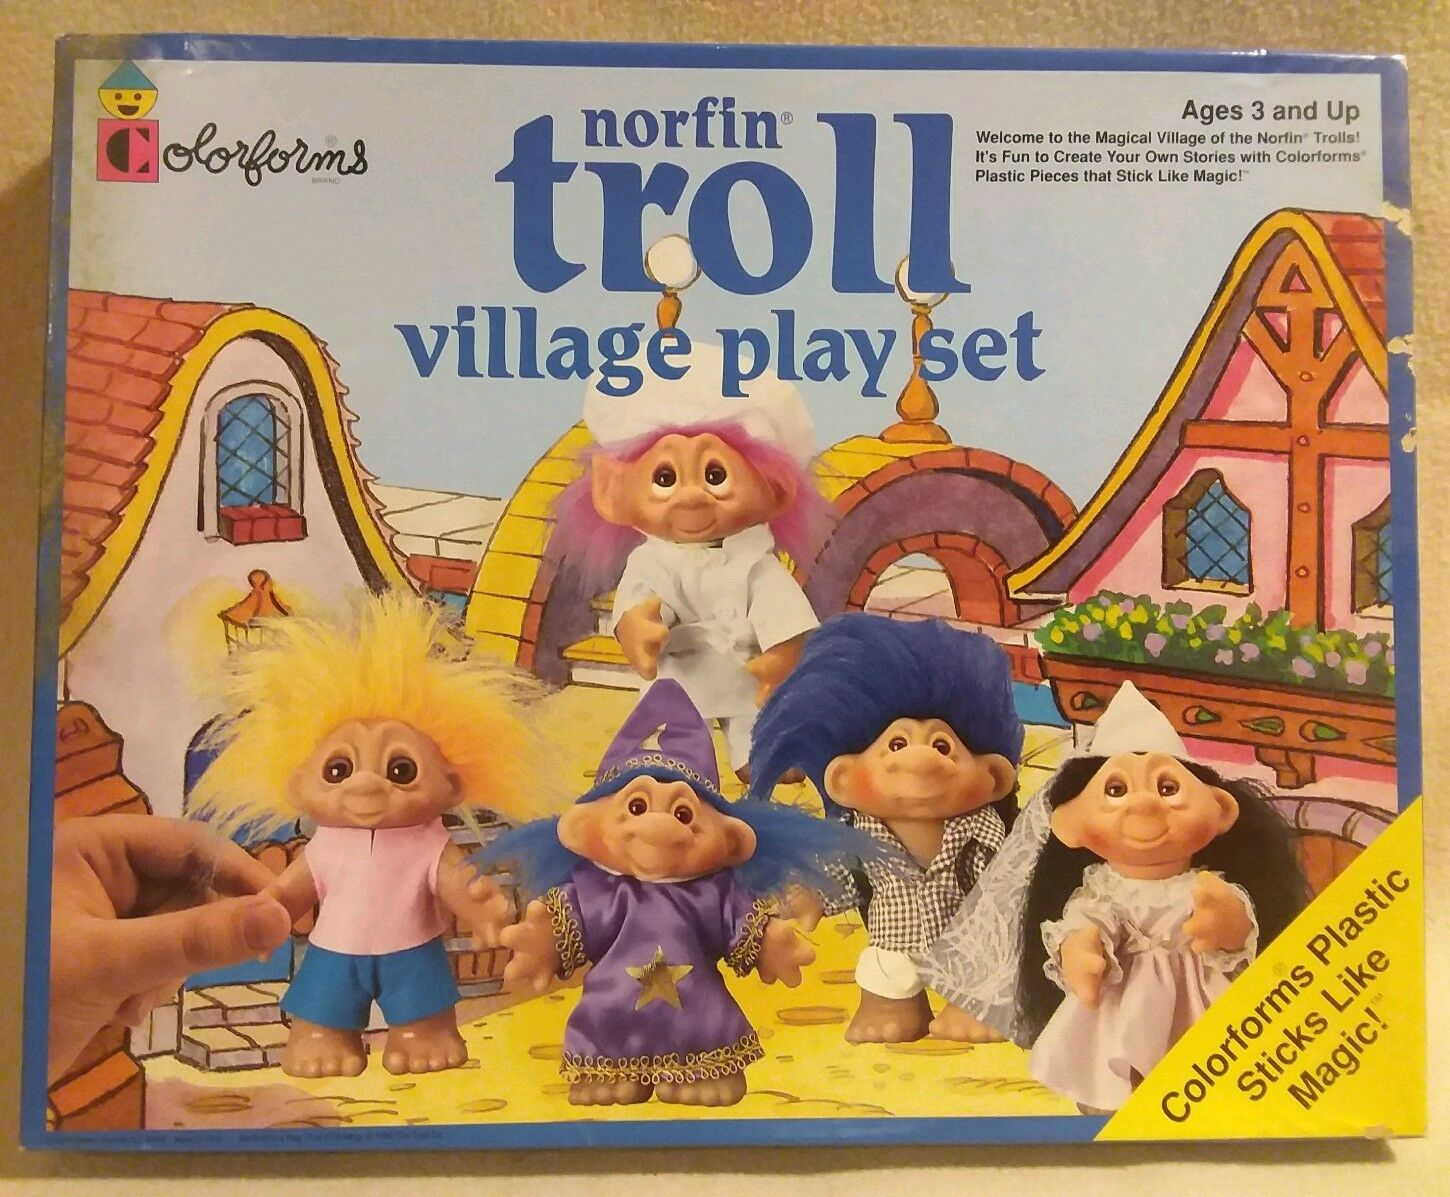 Norfin Troll Village Play Set by colorforms 1992